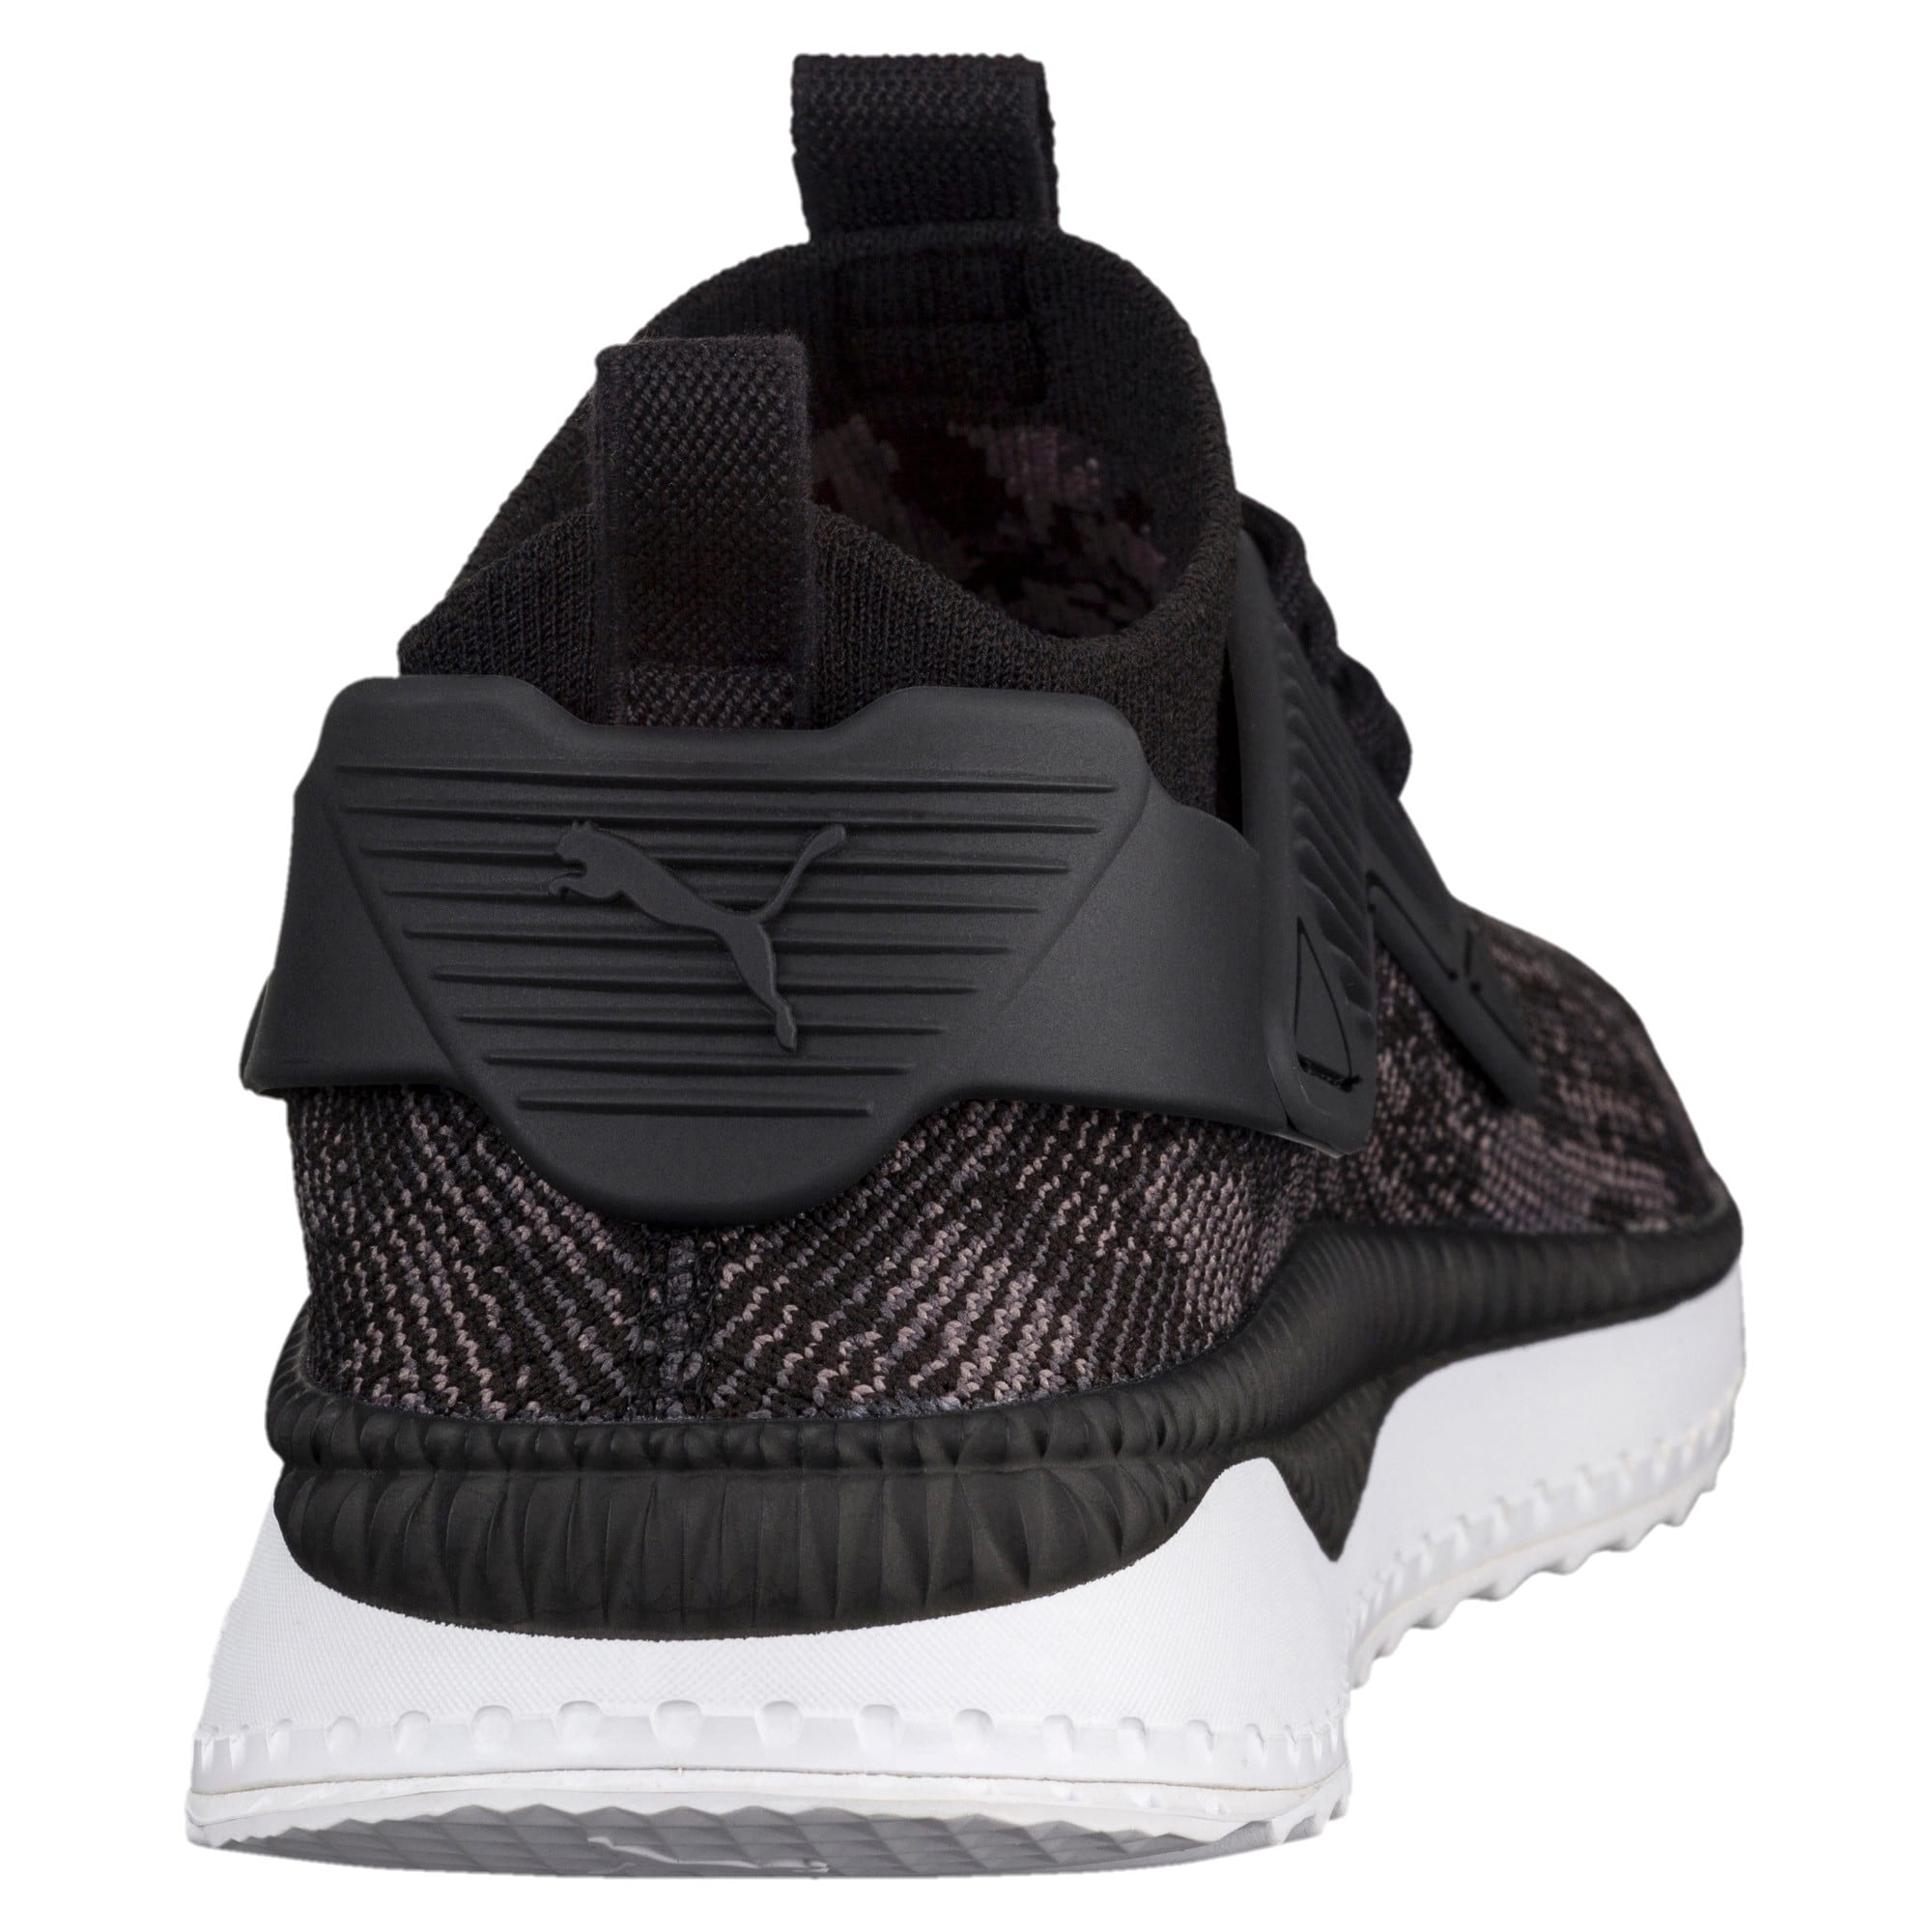 Thumbnail 3 of TSUGI Cage evoKNIT WF Trainers, Puma Black-Puma White-, medium-IND